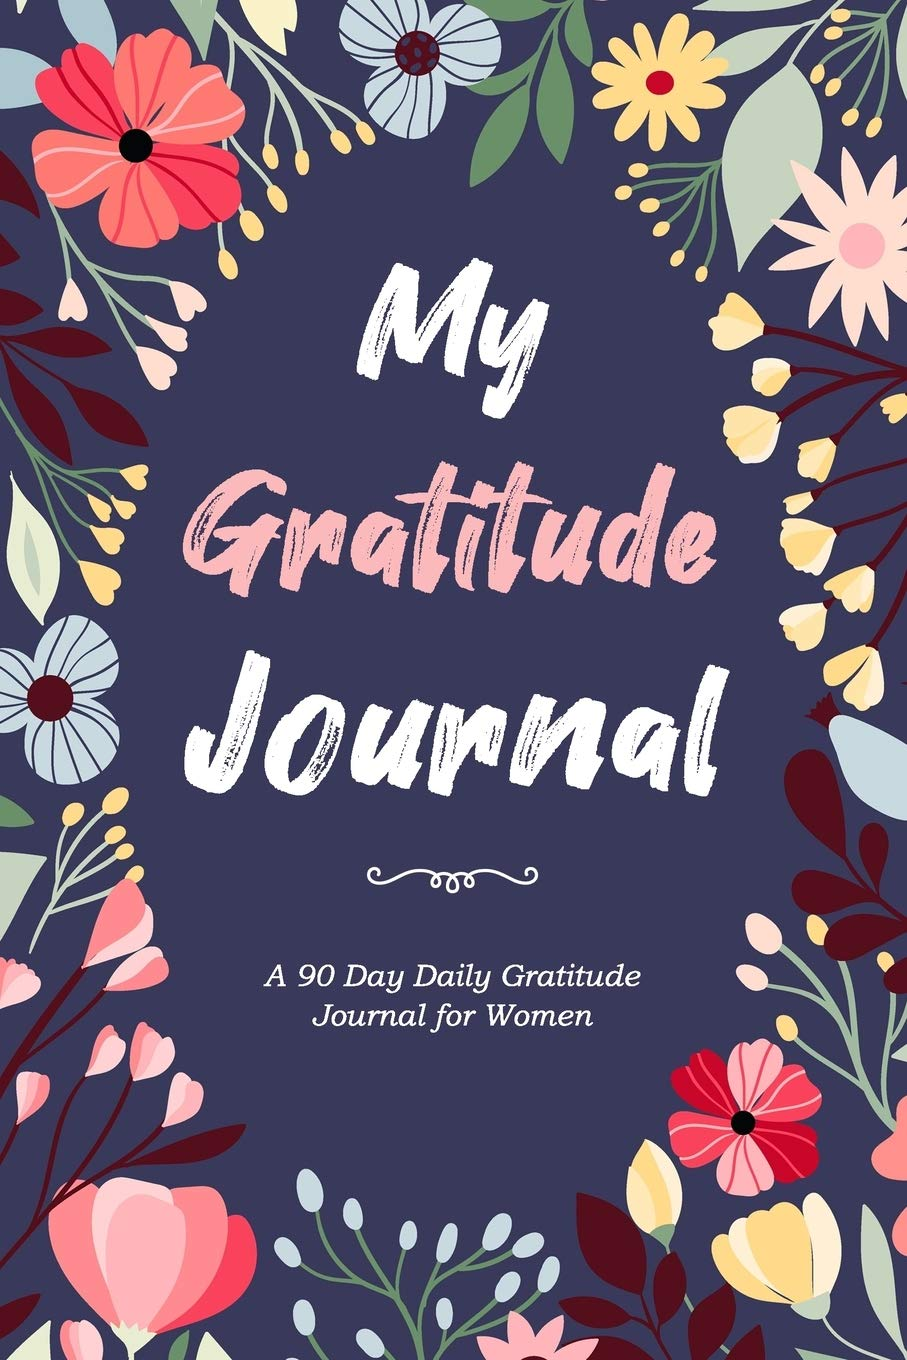 Daily Gratitude Journal For Women: 90 Day Gratitude Journal With Prompts For Women / Daily Reflection Journal